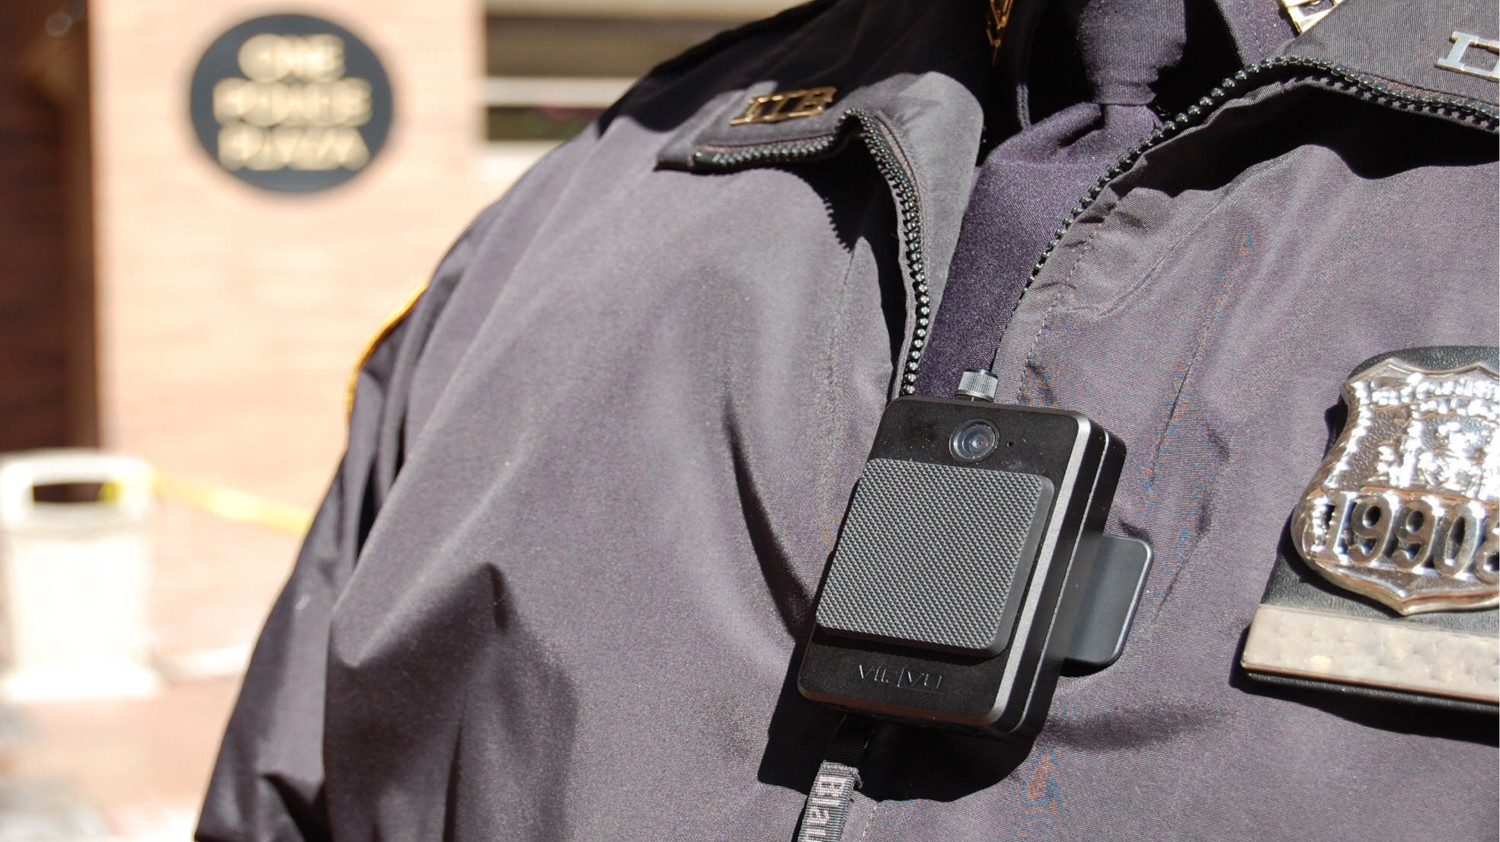 Mayor Bill de Blasio announced an accelerated plan to equip all patrol officers with body cameras by the end of 2018.